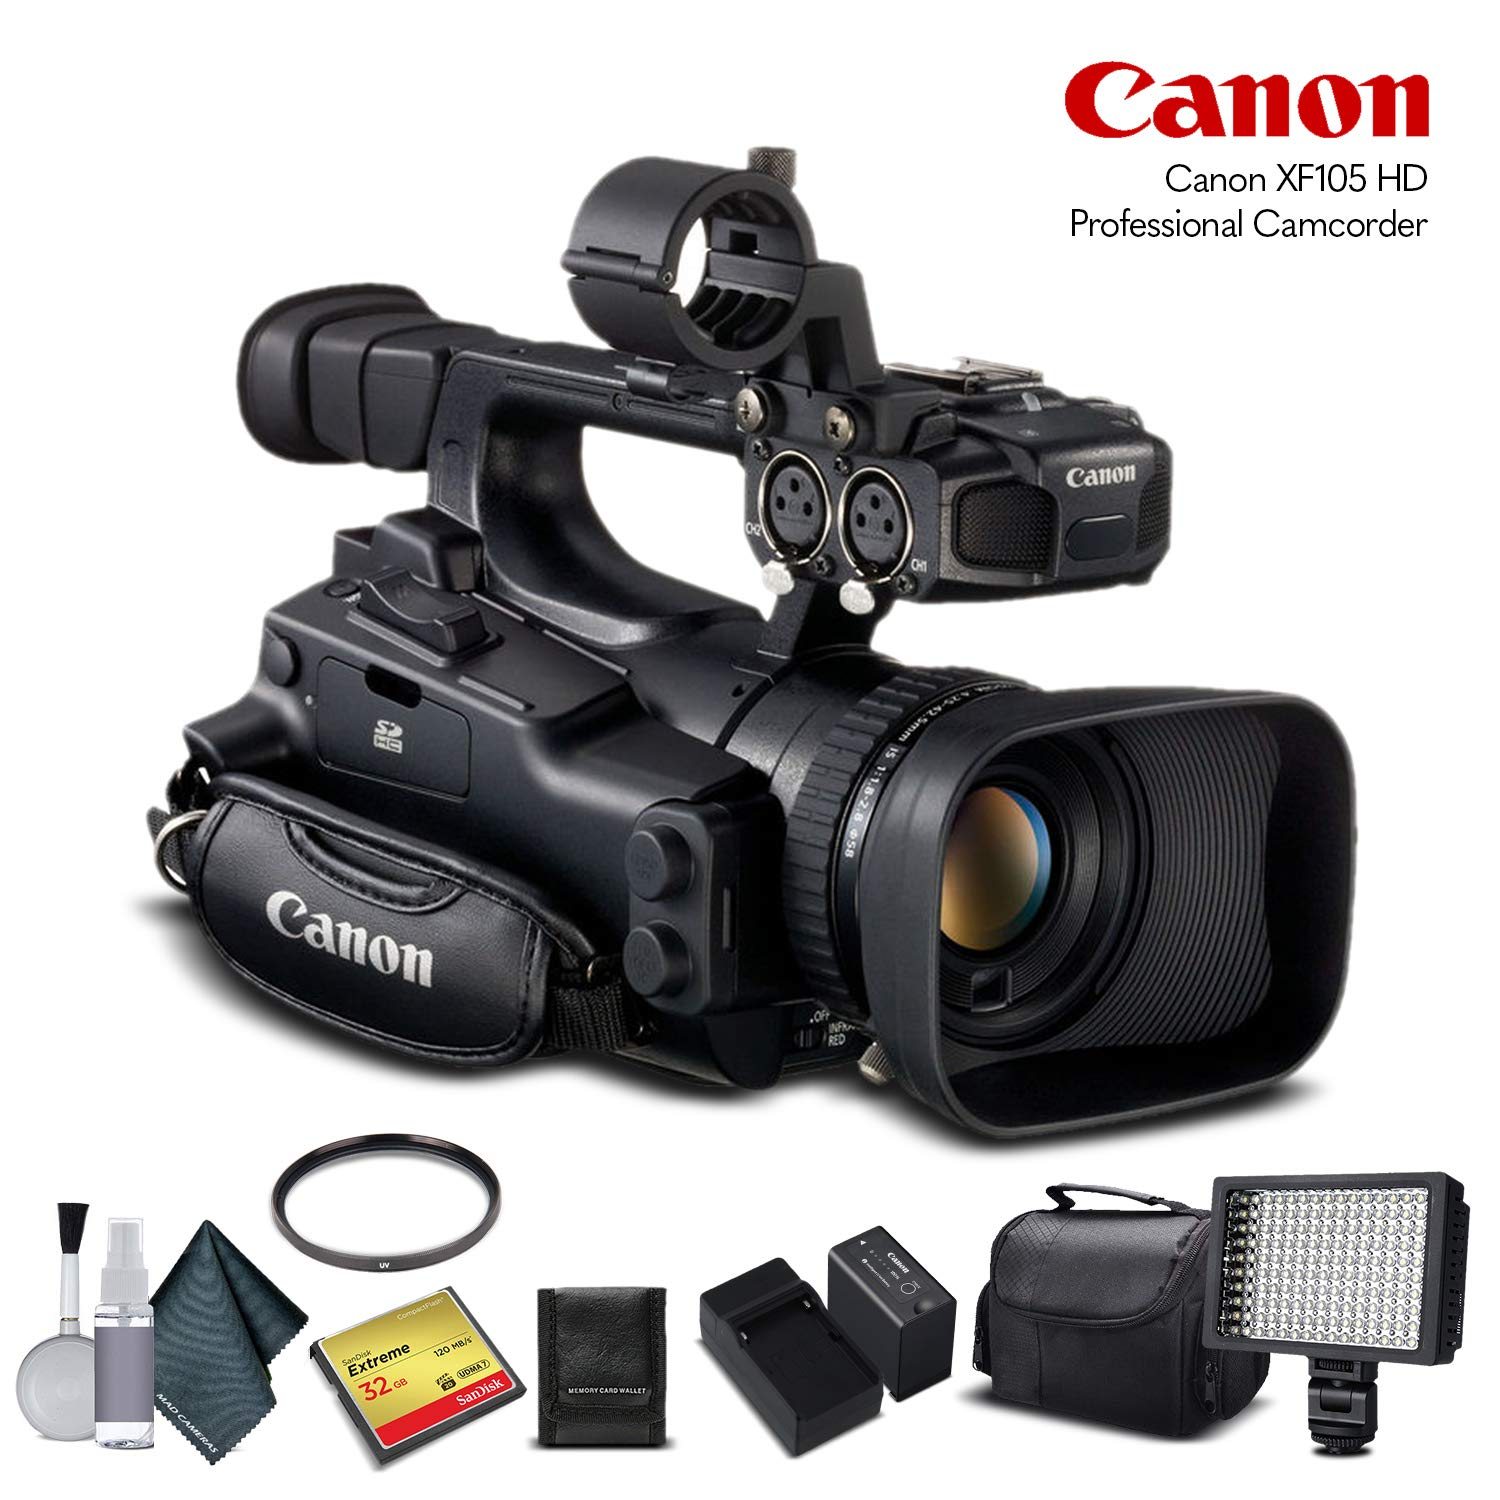 Amazon.com : Canon XF100 HD Professional Camcorder (4888B001) with 32GB Memory Card, Extra Battery and Charger, UV Filter, LED Light, Case and More.